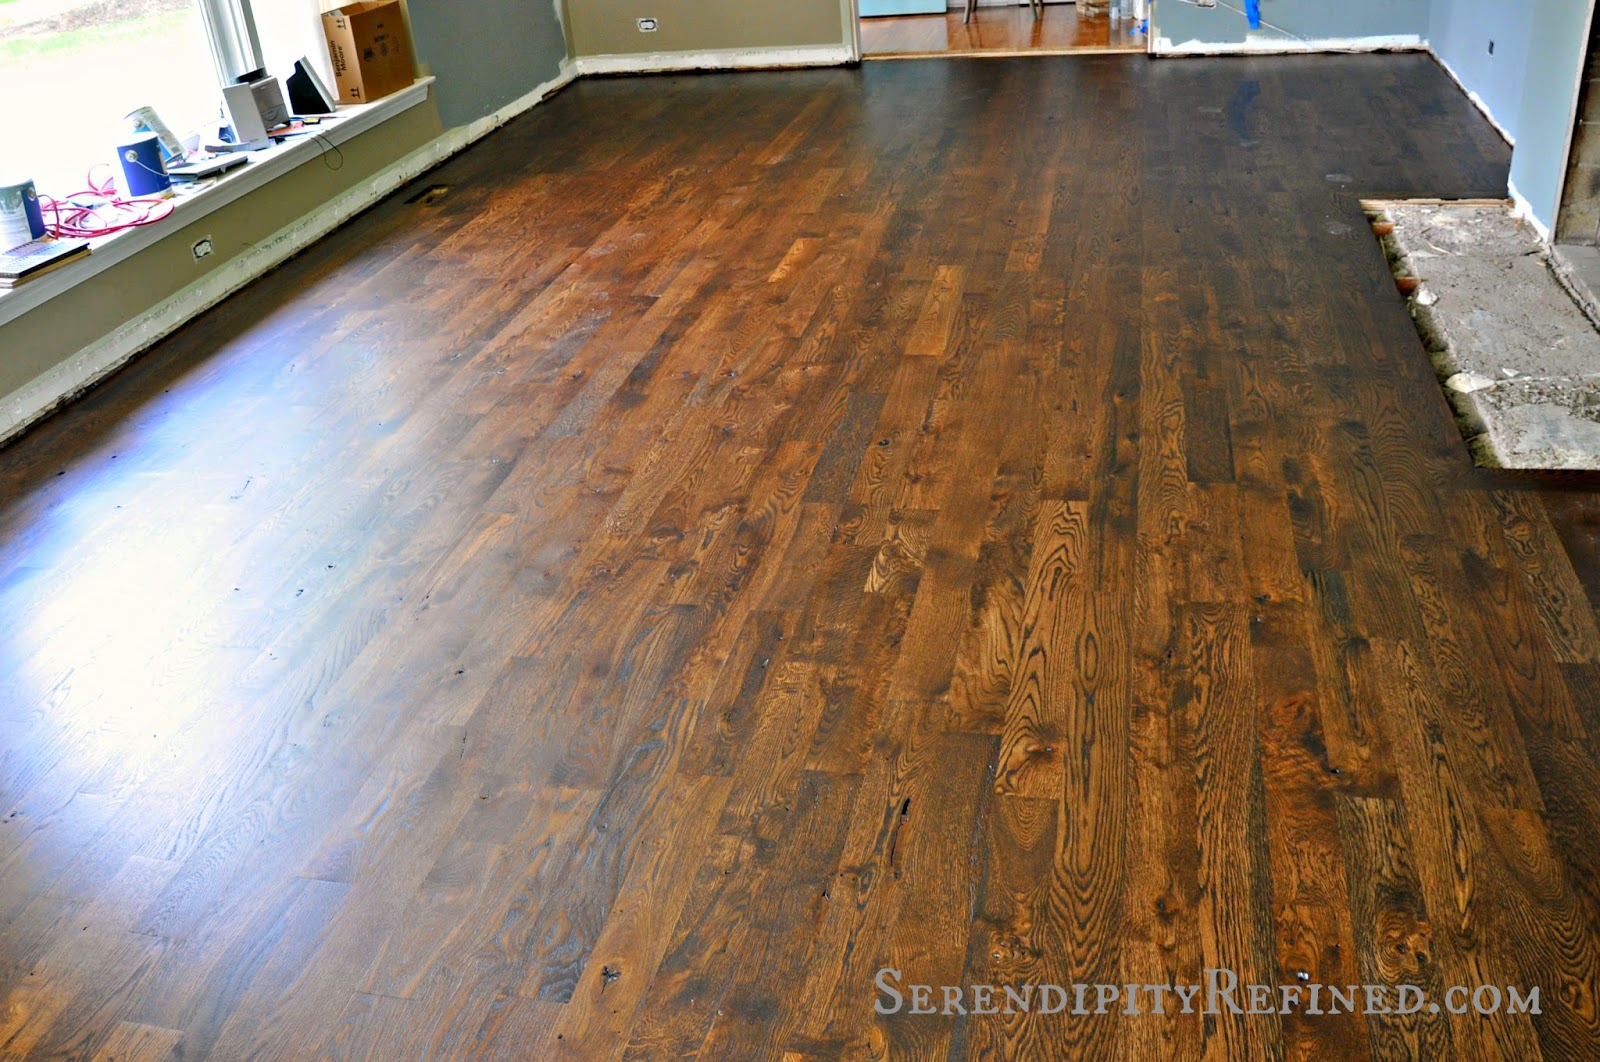 Serendipity Refined Blog How To Choose Hardwood Floor And Finish